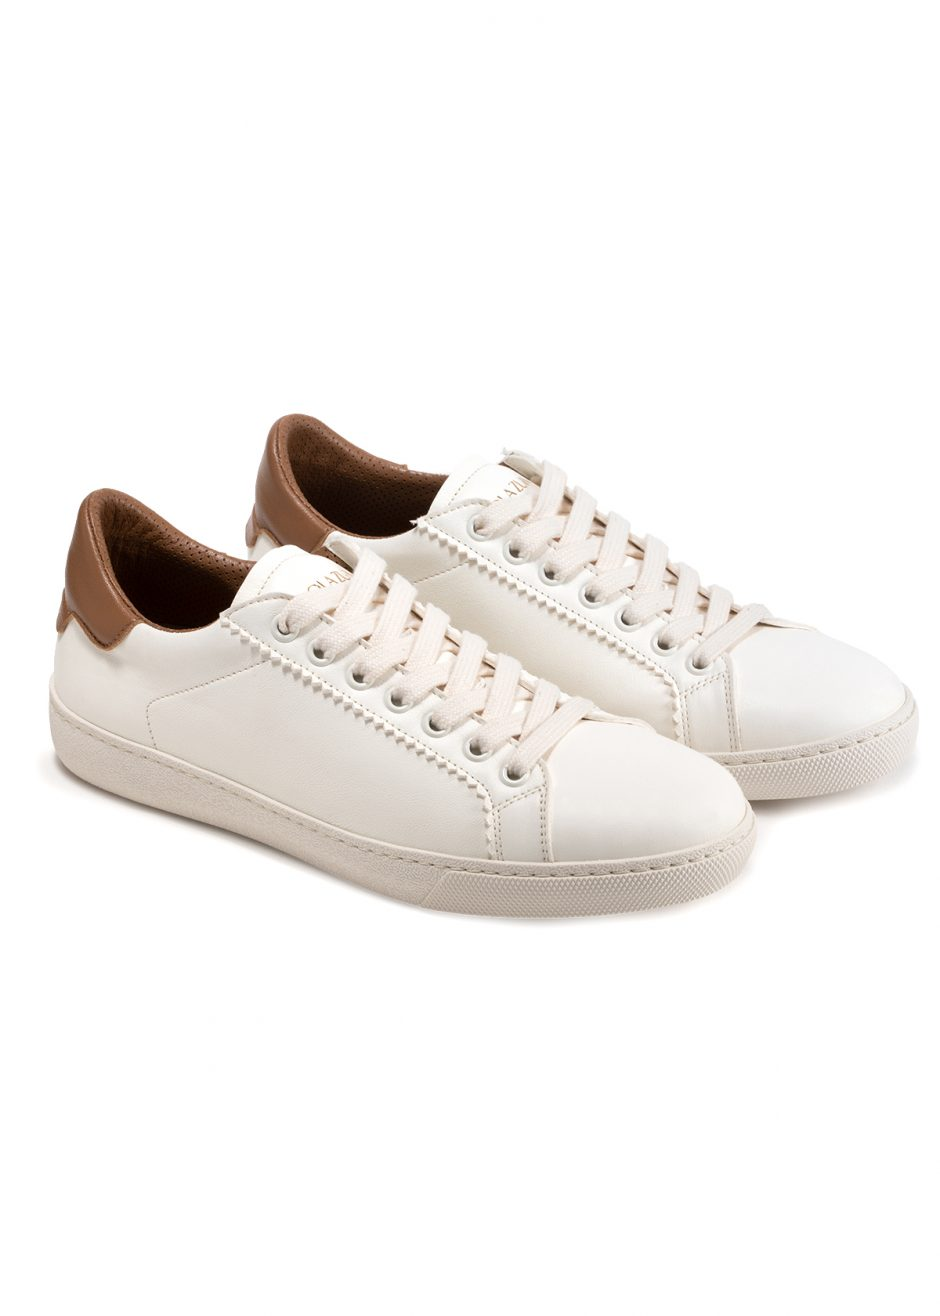 Jackie – Sneakers milk kid leather